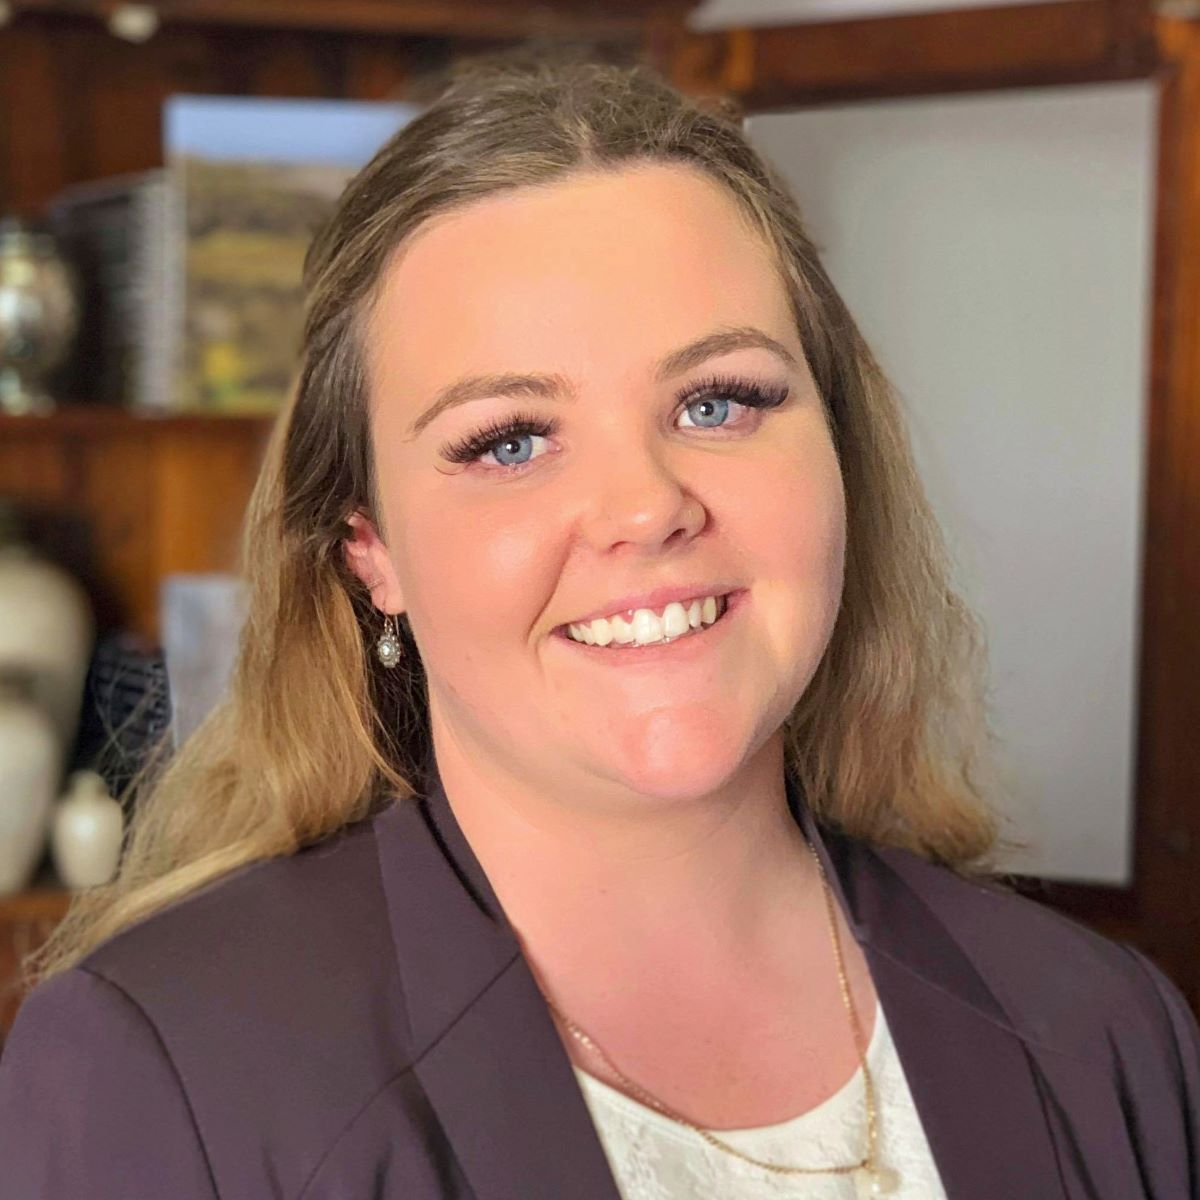 Paige Guille-Harvey is a Funeral Assistant at Mid West Funerals in Geraldton